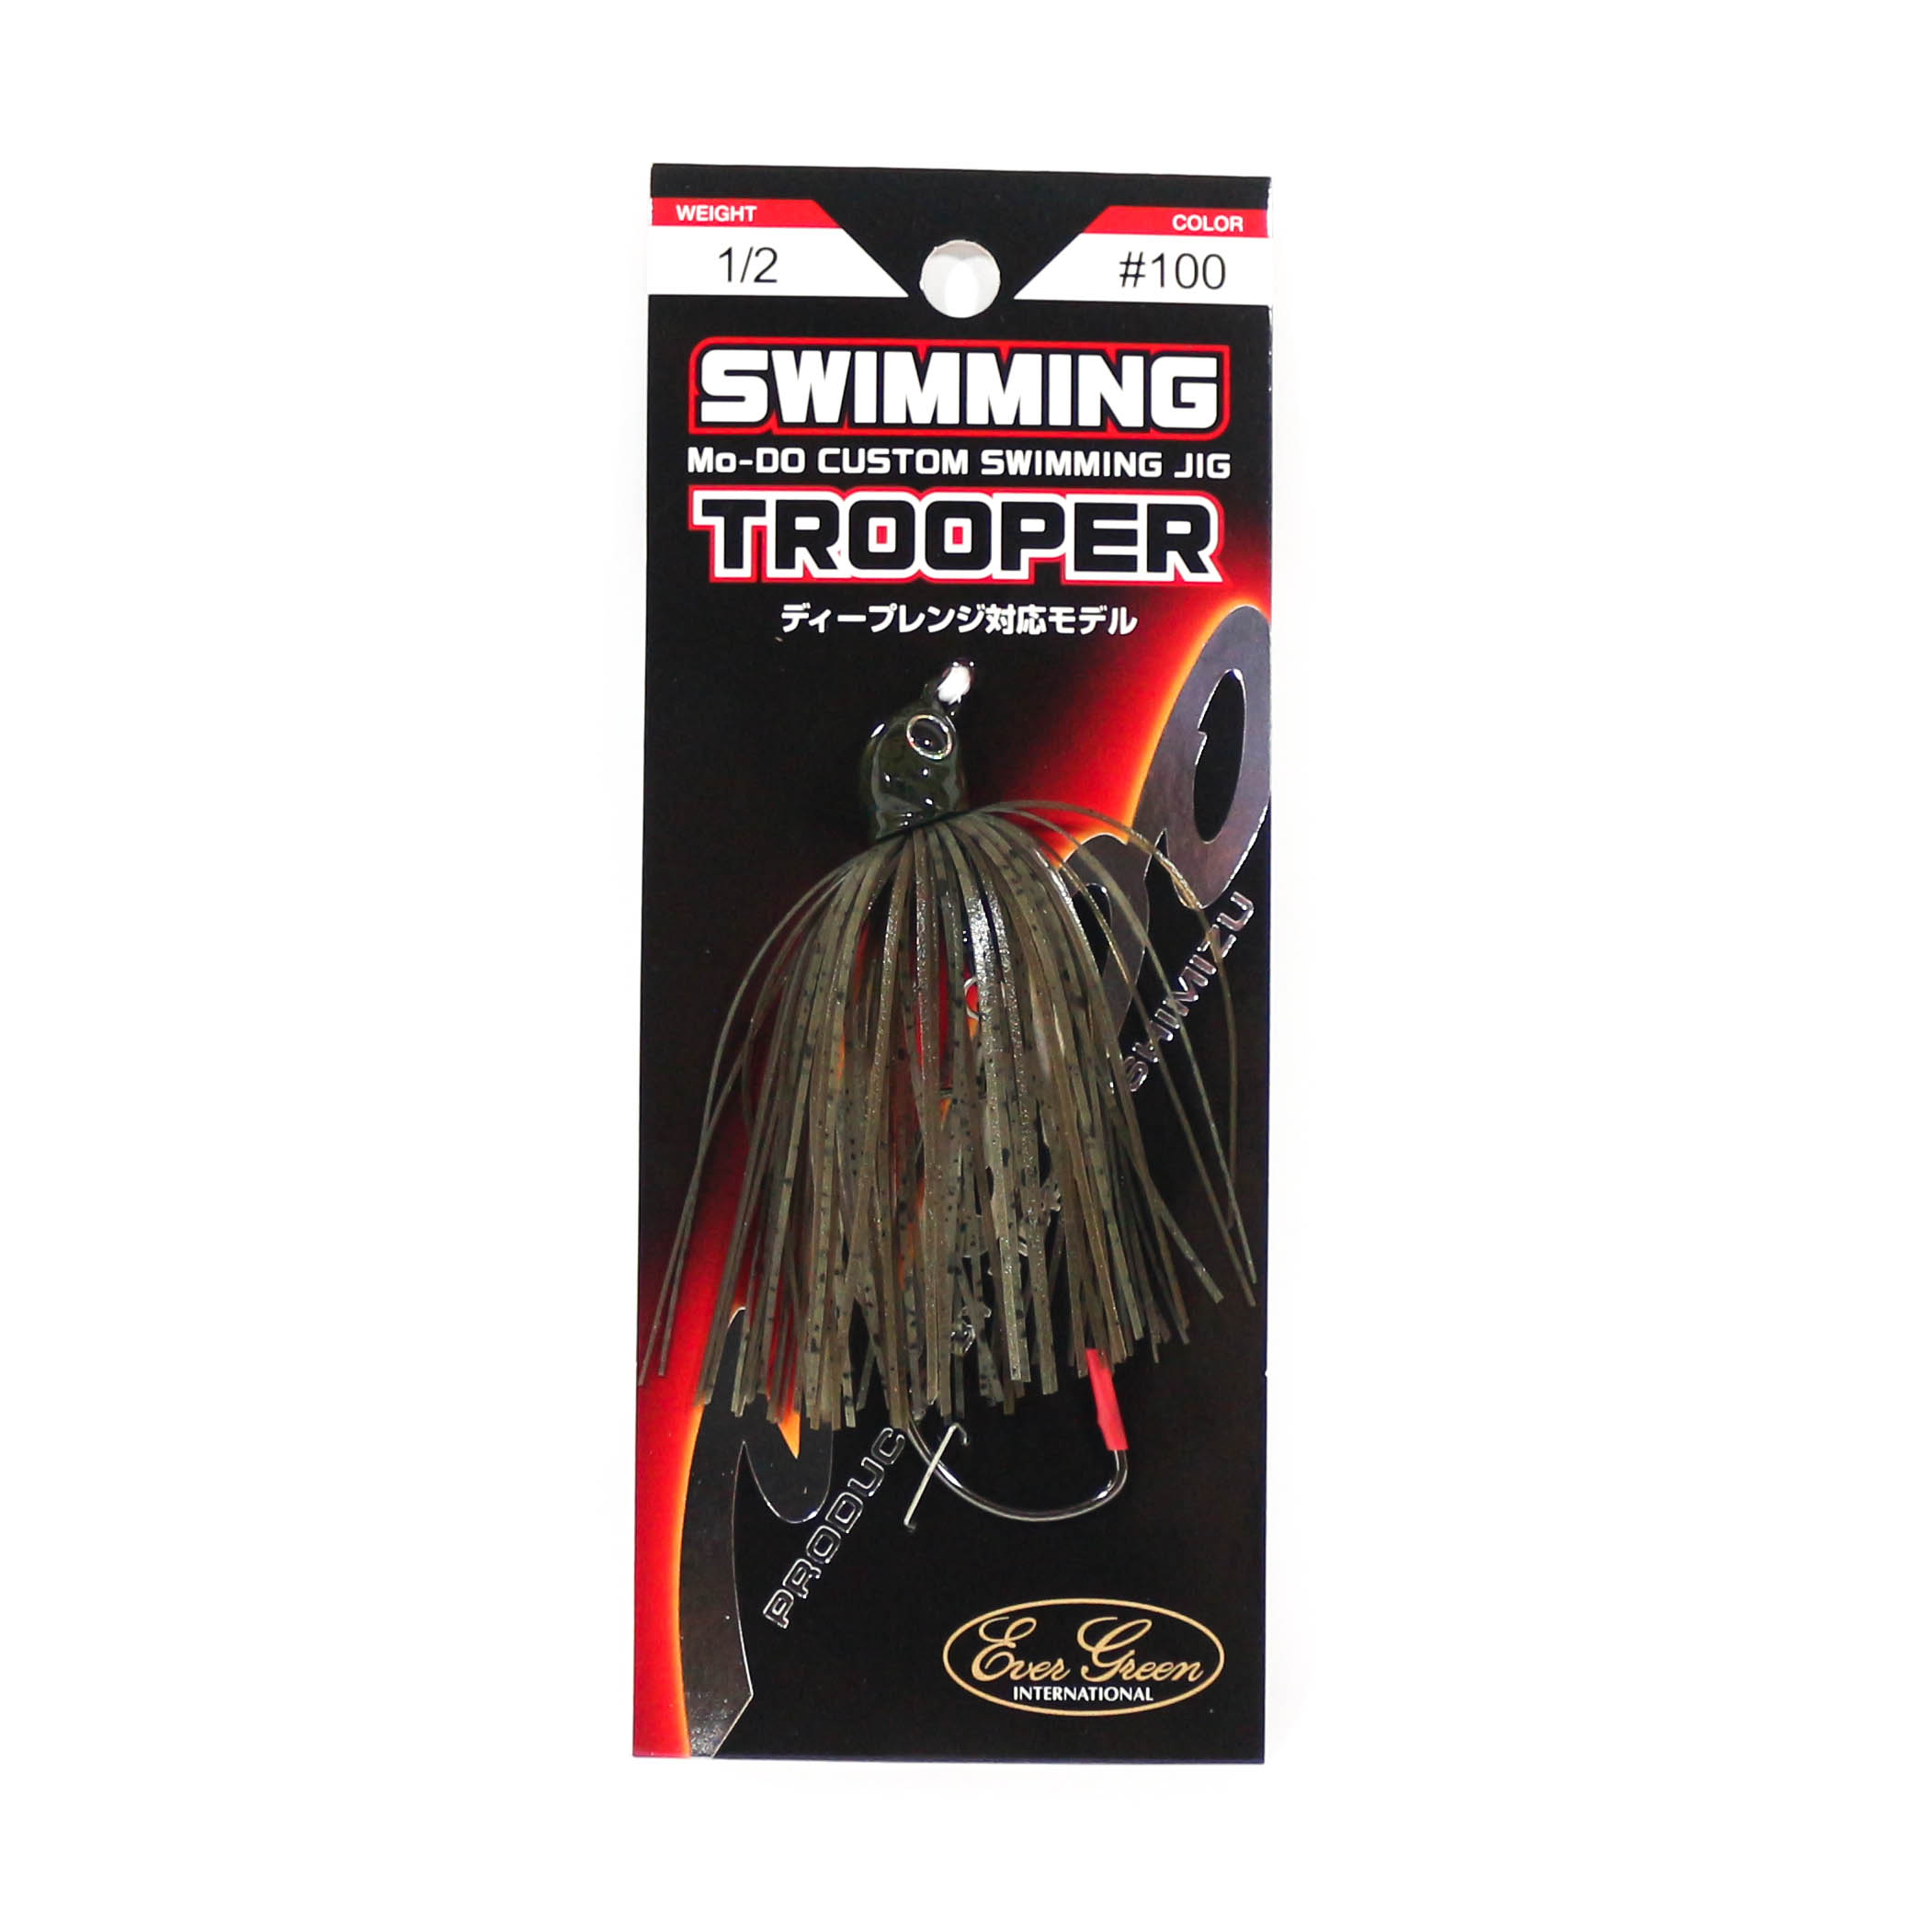 Evergreen Swimming Trooper Rubber Jig 1/2 oz Sinking Lure 100 (7090)